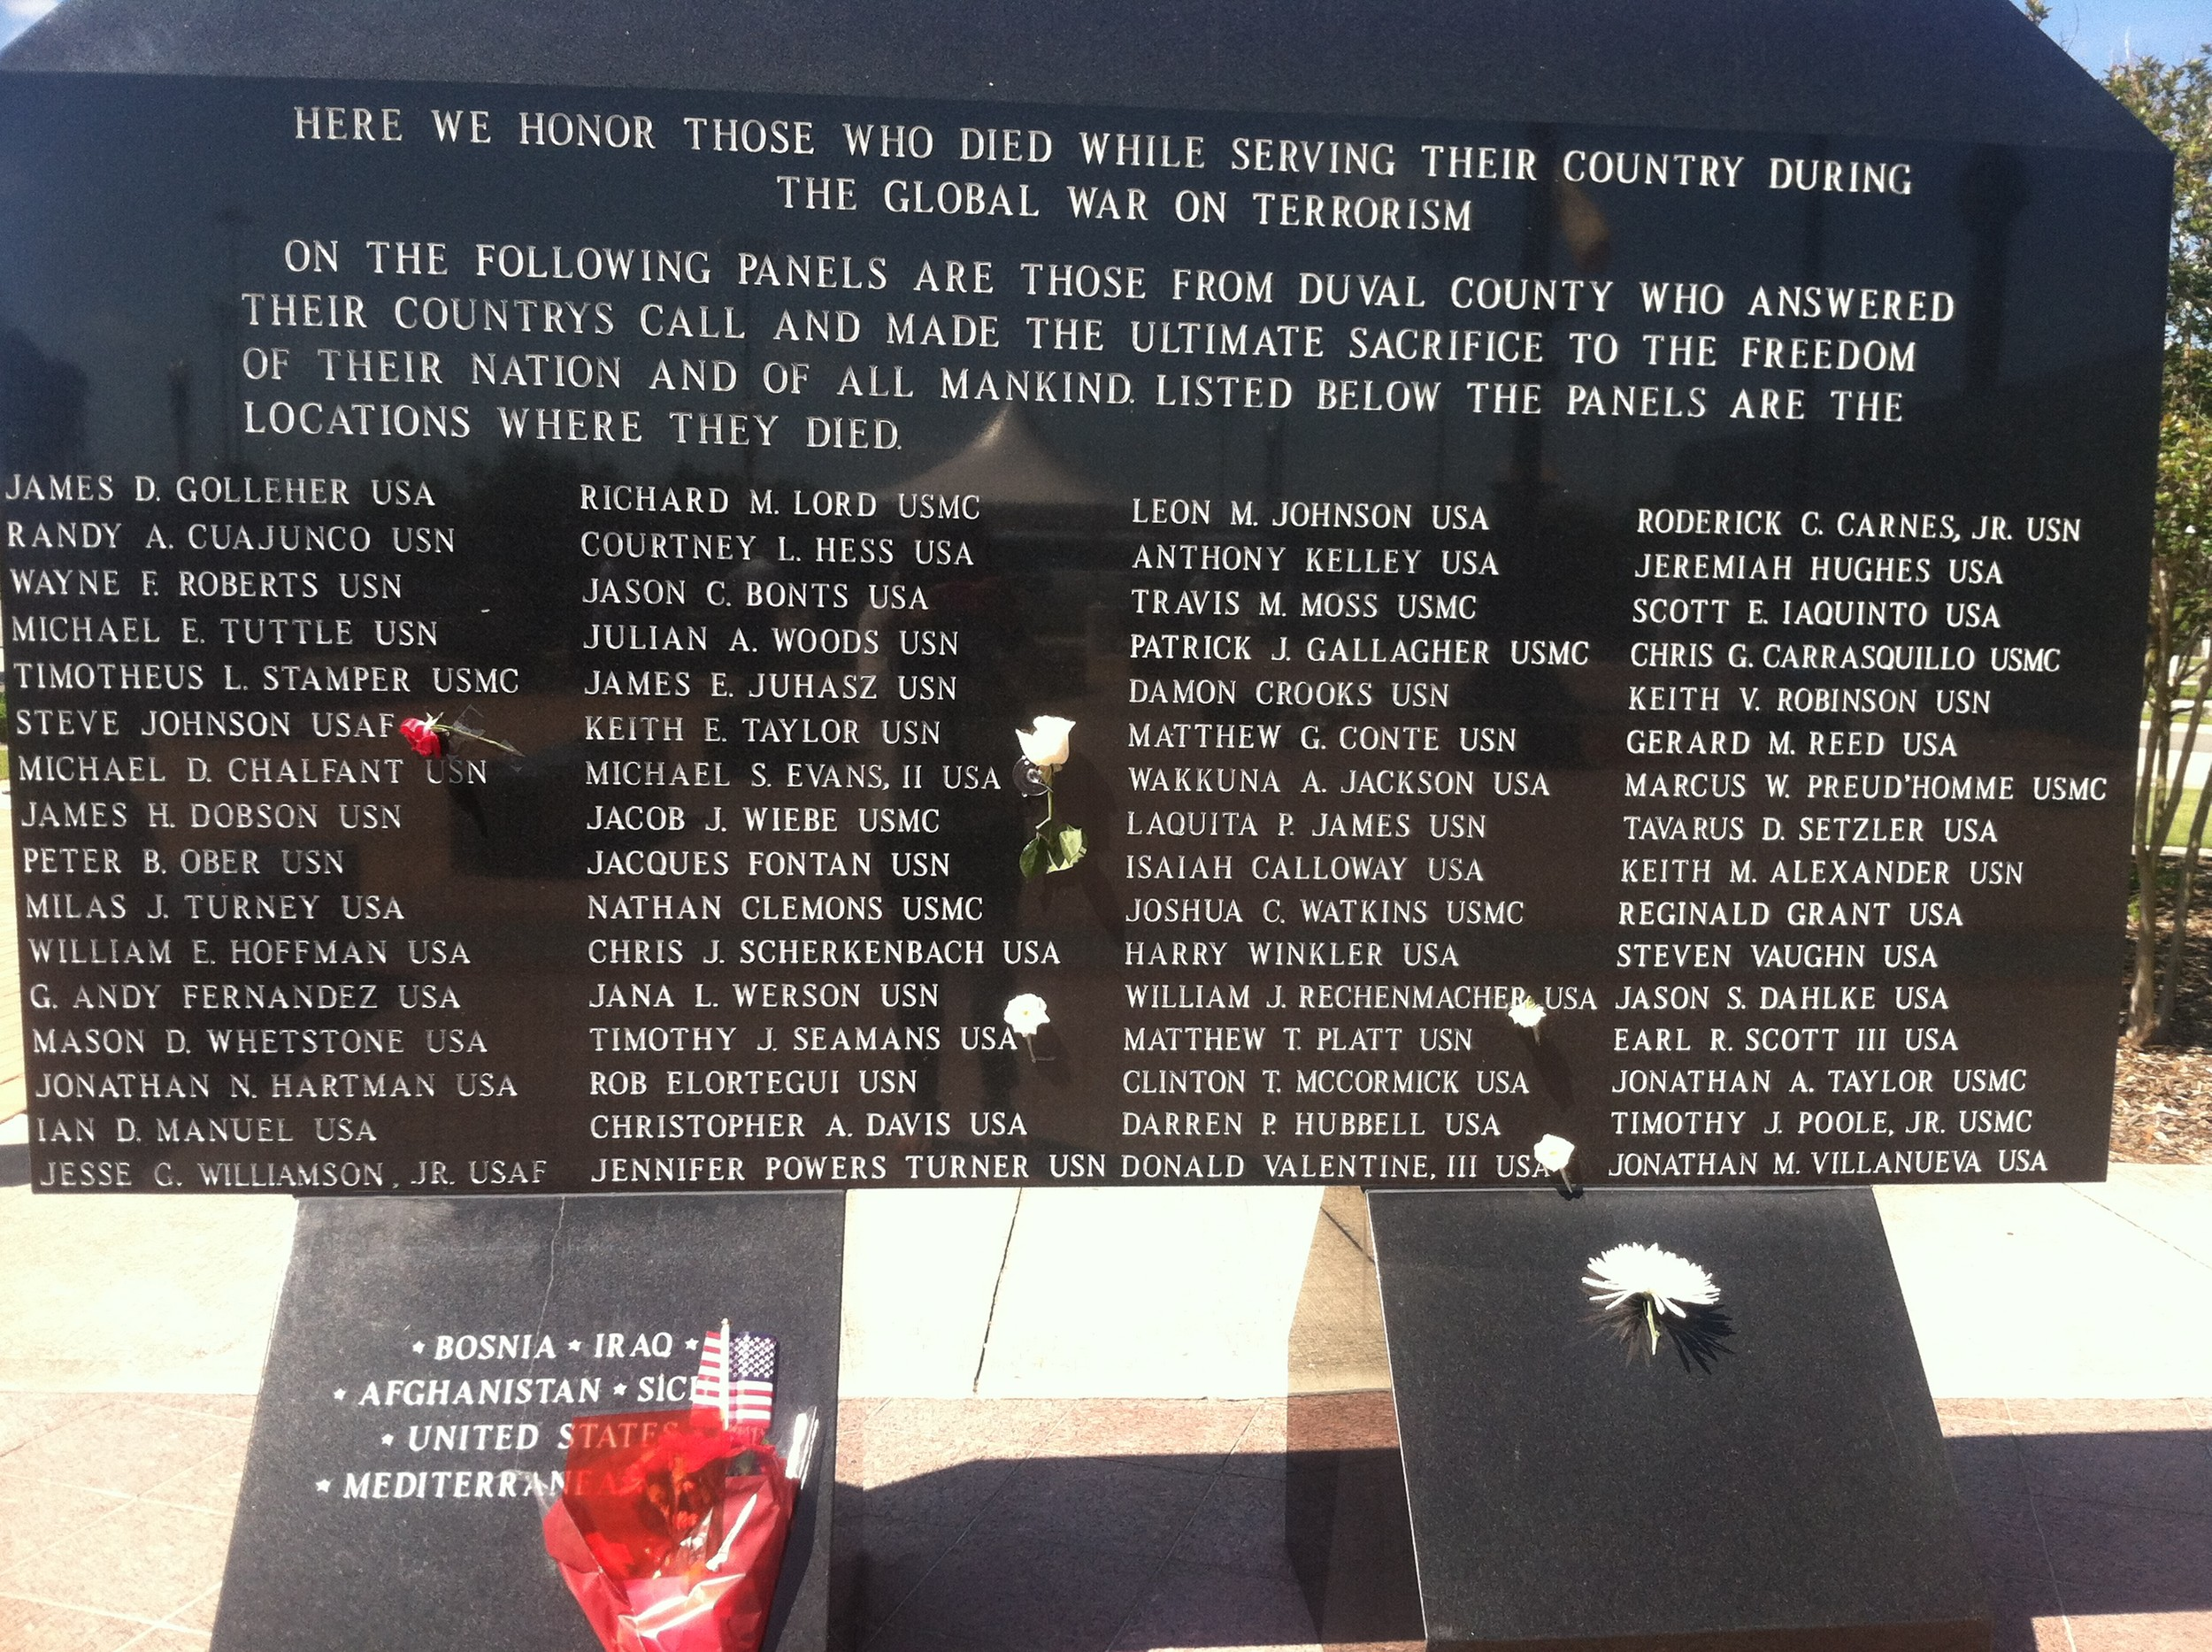 One of the walls honors those who died during the Global War on Terrorism.